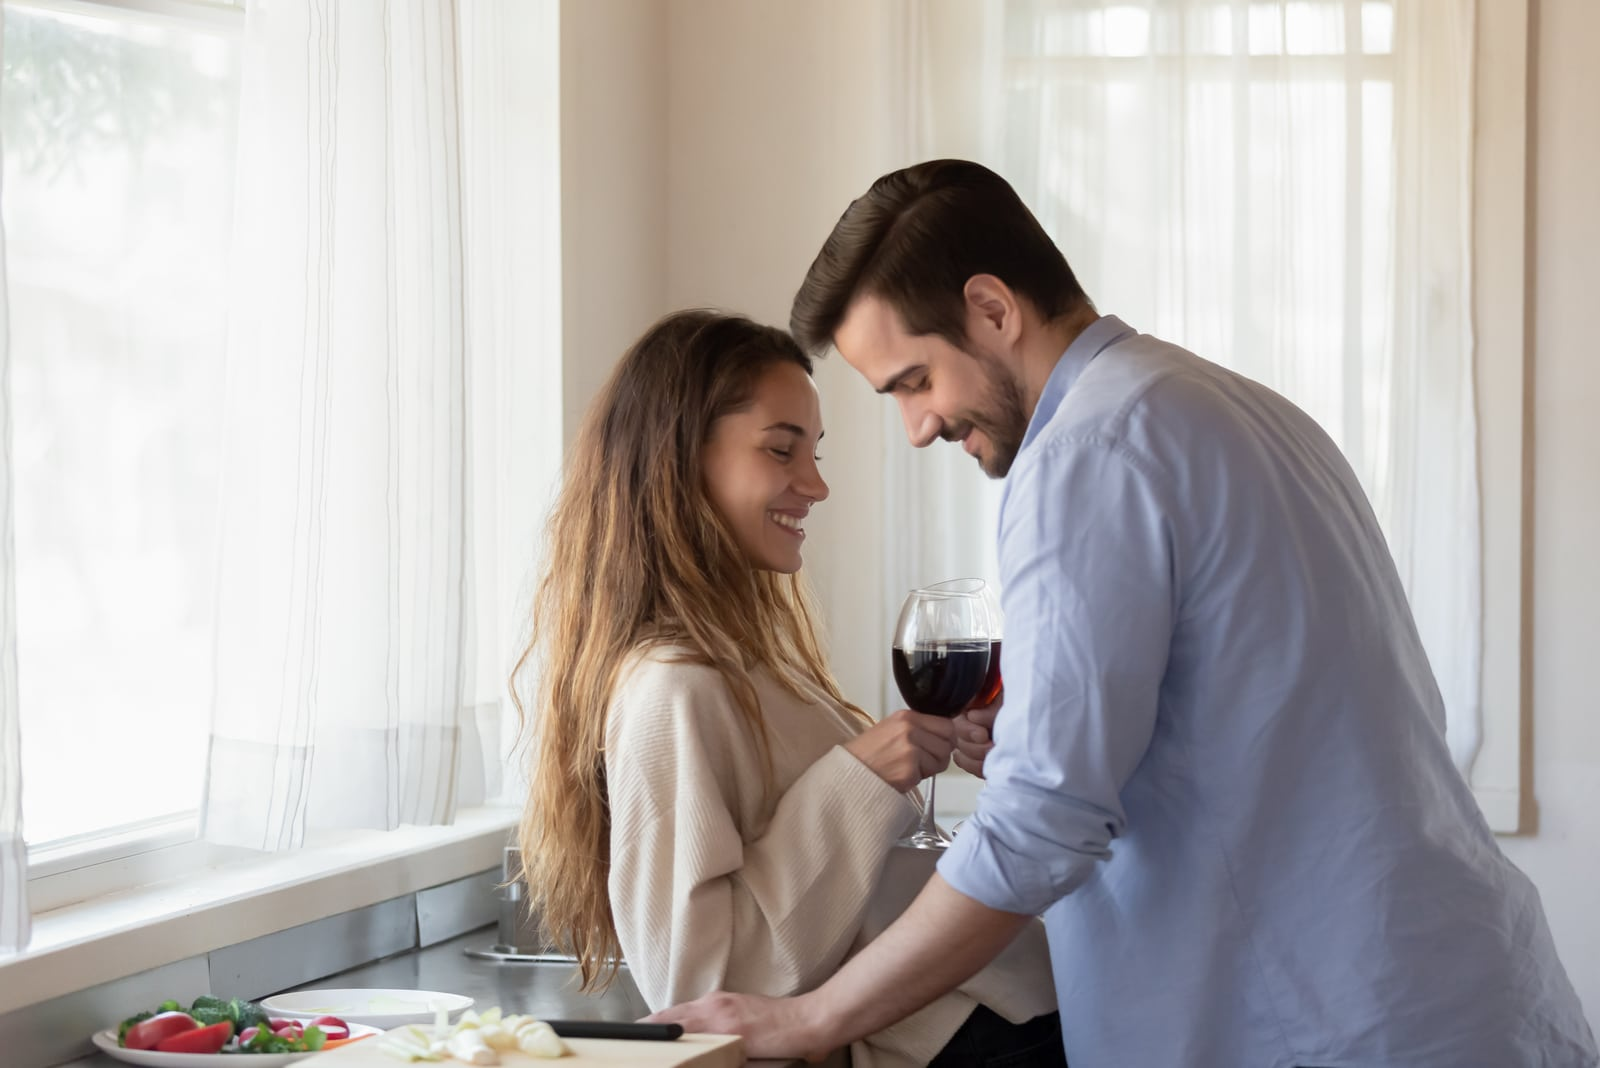 couple flirting in the kitchen